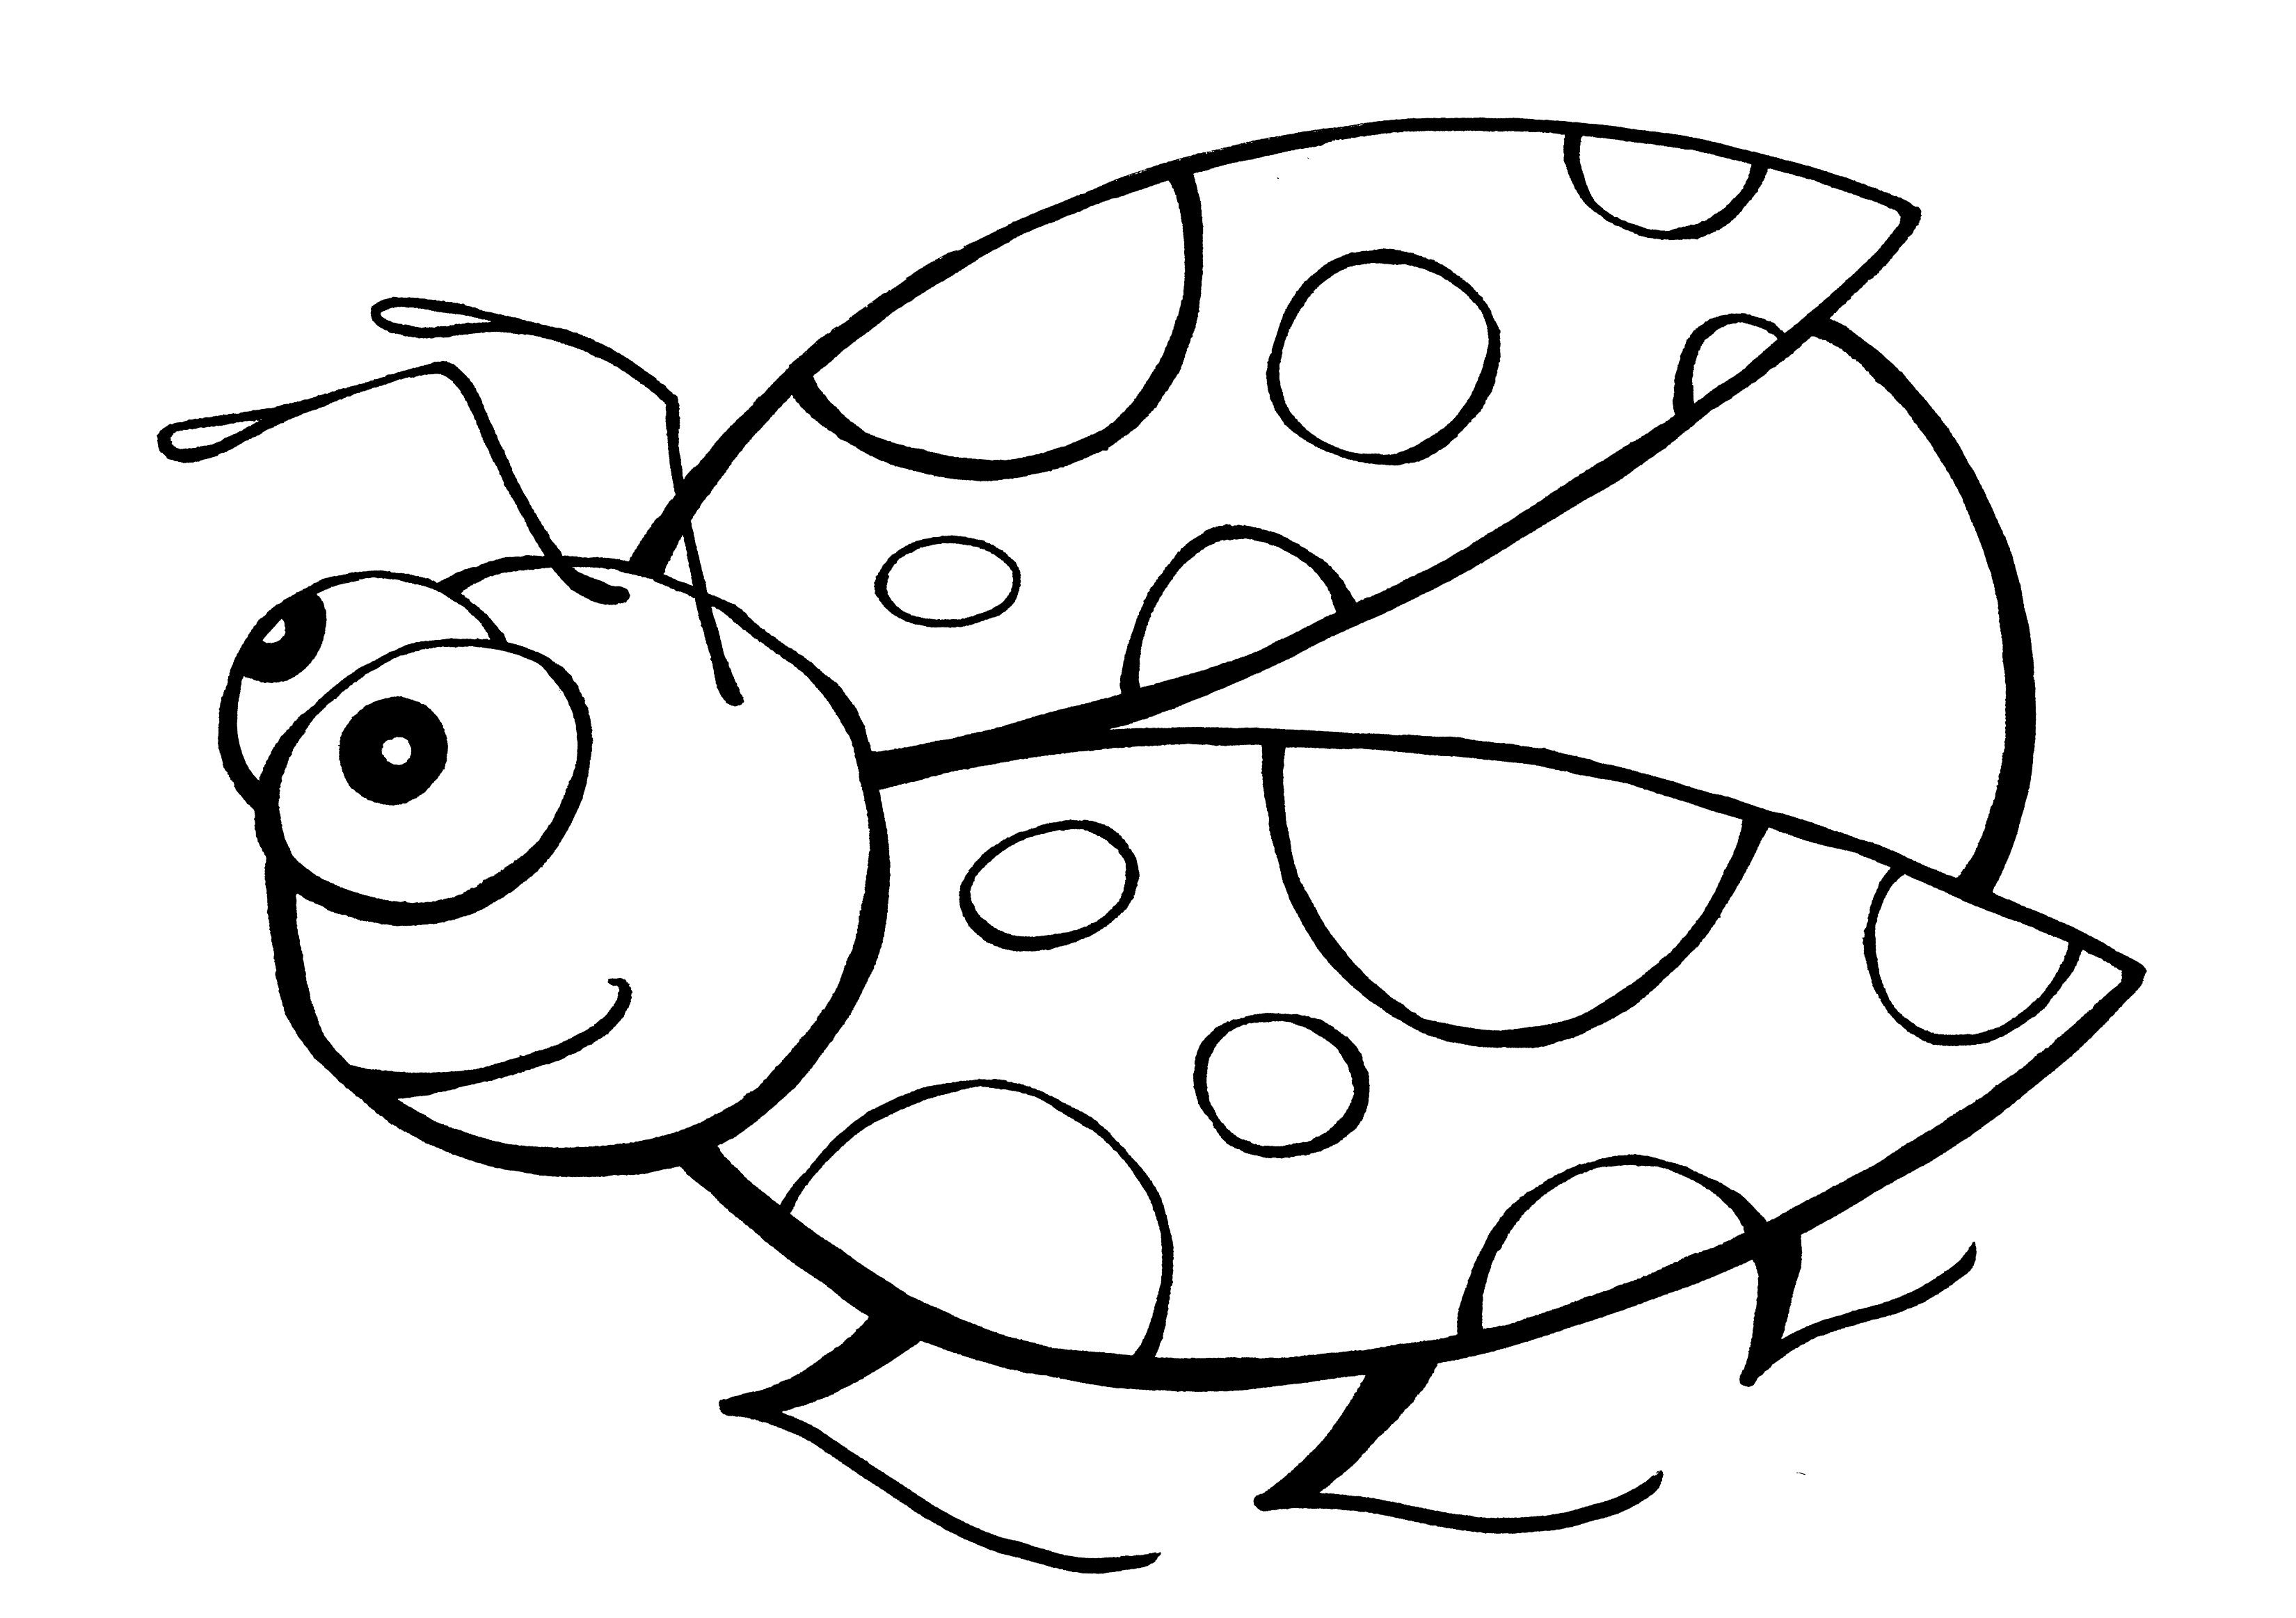 coloring ladybug ladybug coloring pages to download and print for free ladybug coloring